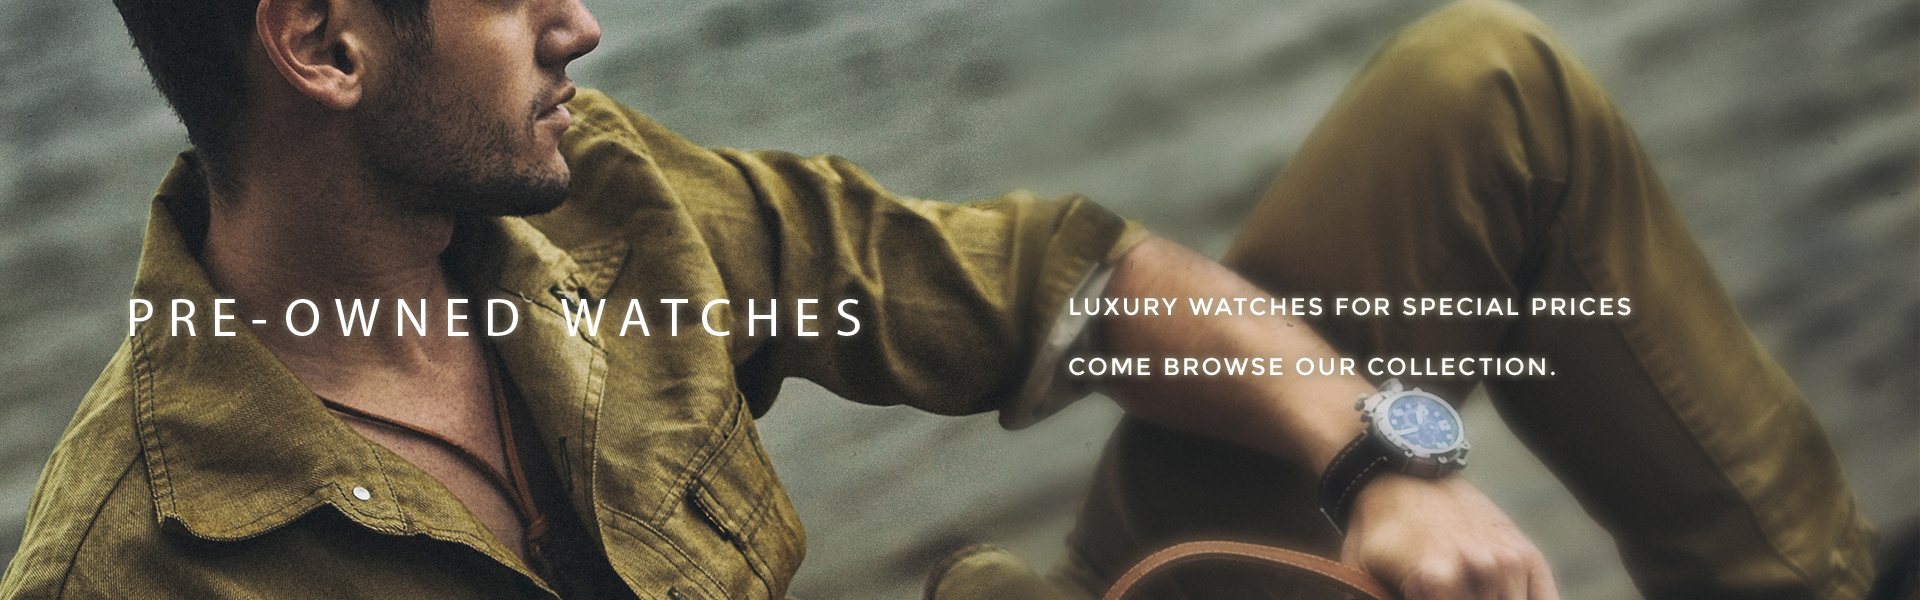 Pre-Owned Watches Banner